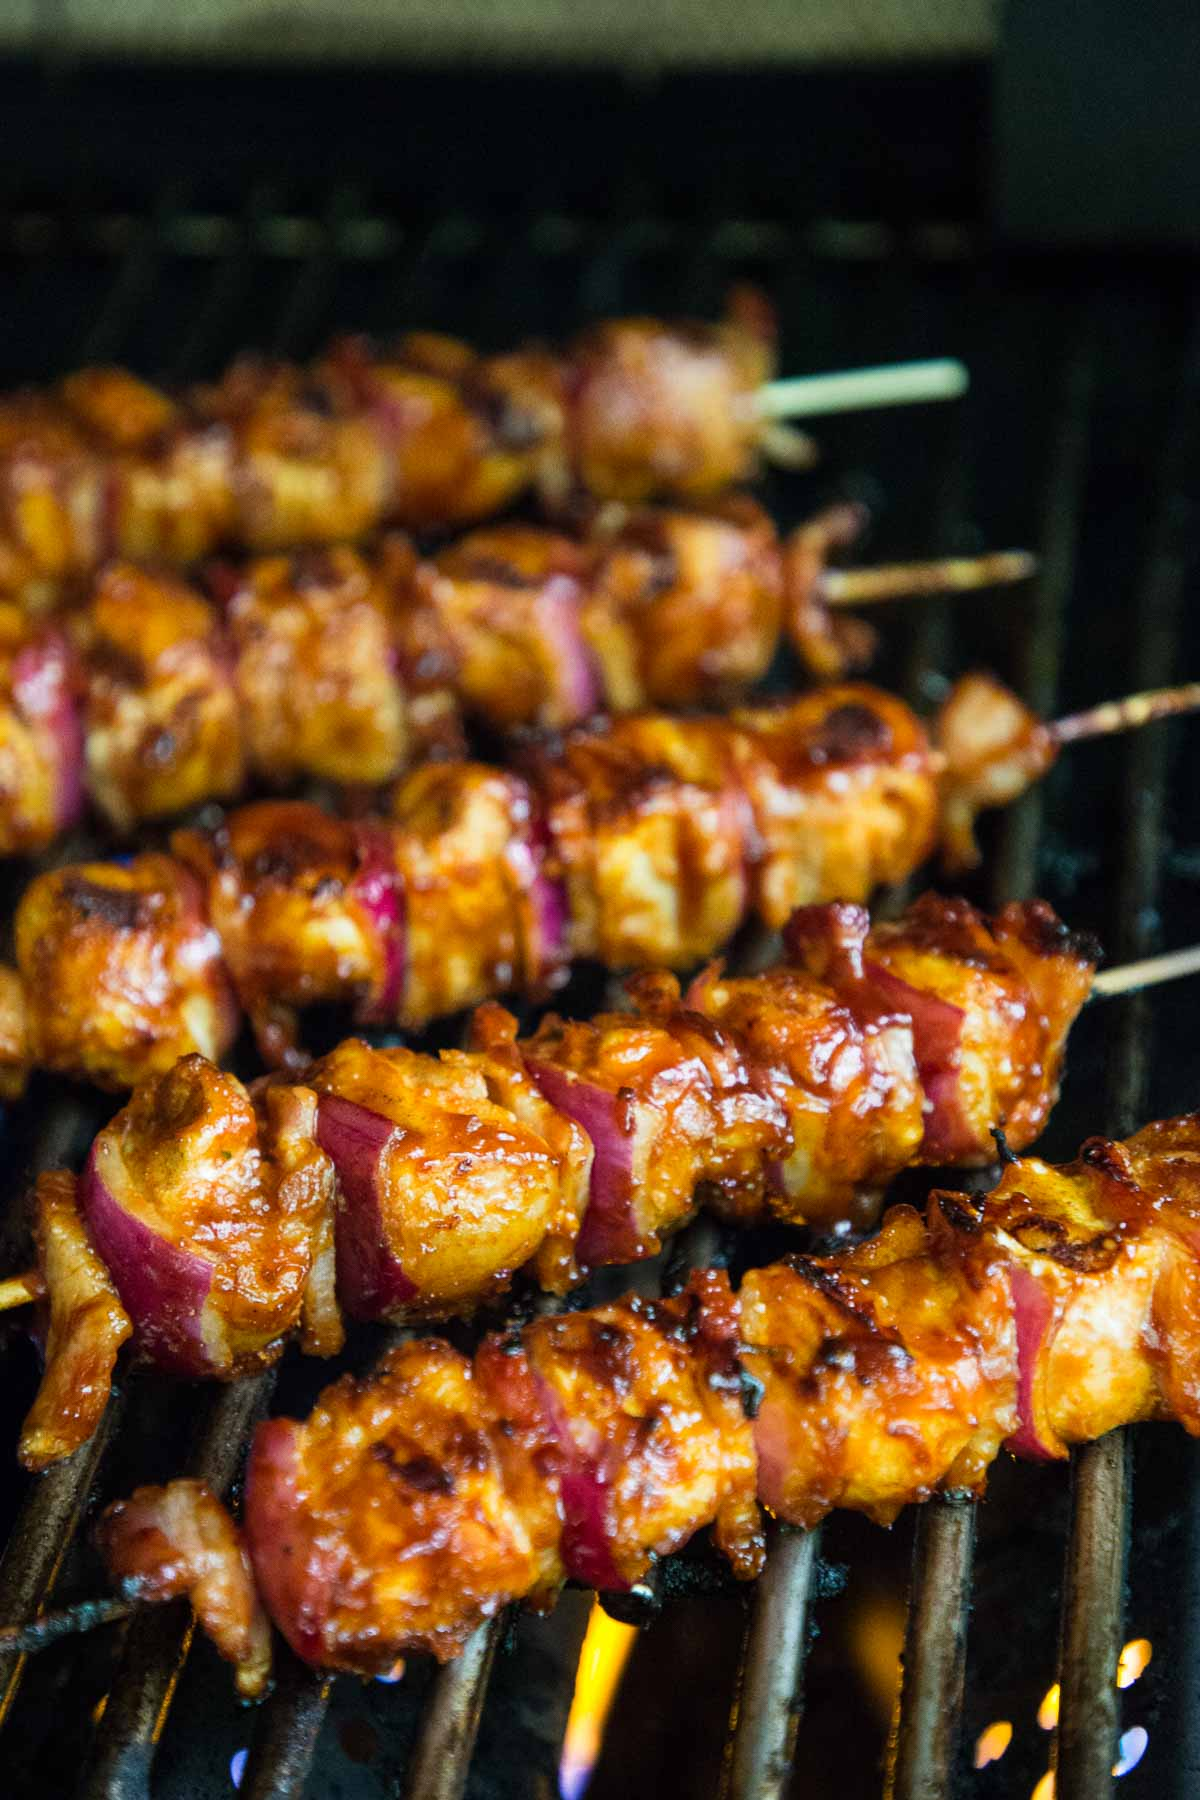 Process photo of Bacon Bourbon Barbecued Chicken Skewers well into the grilling stage.